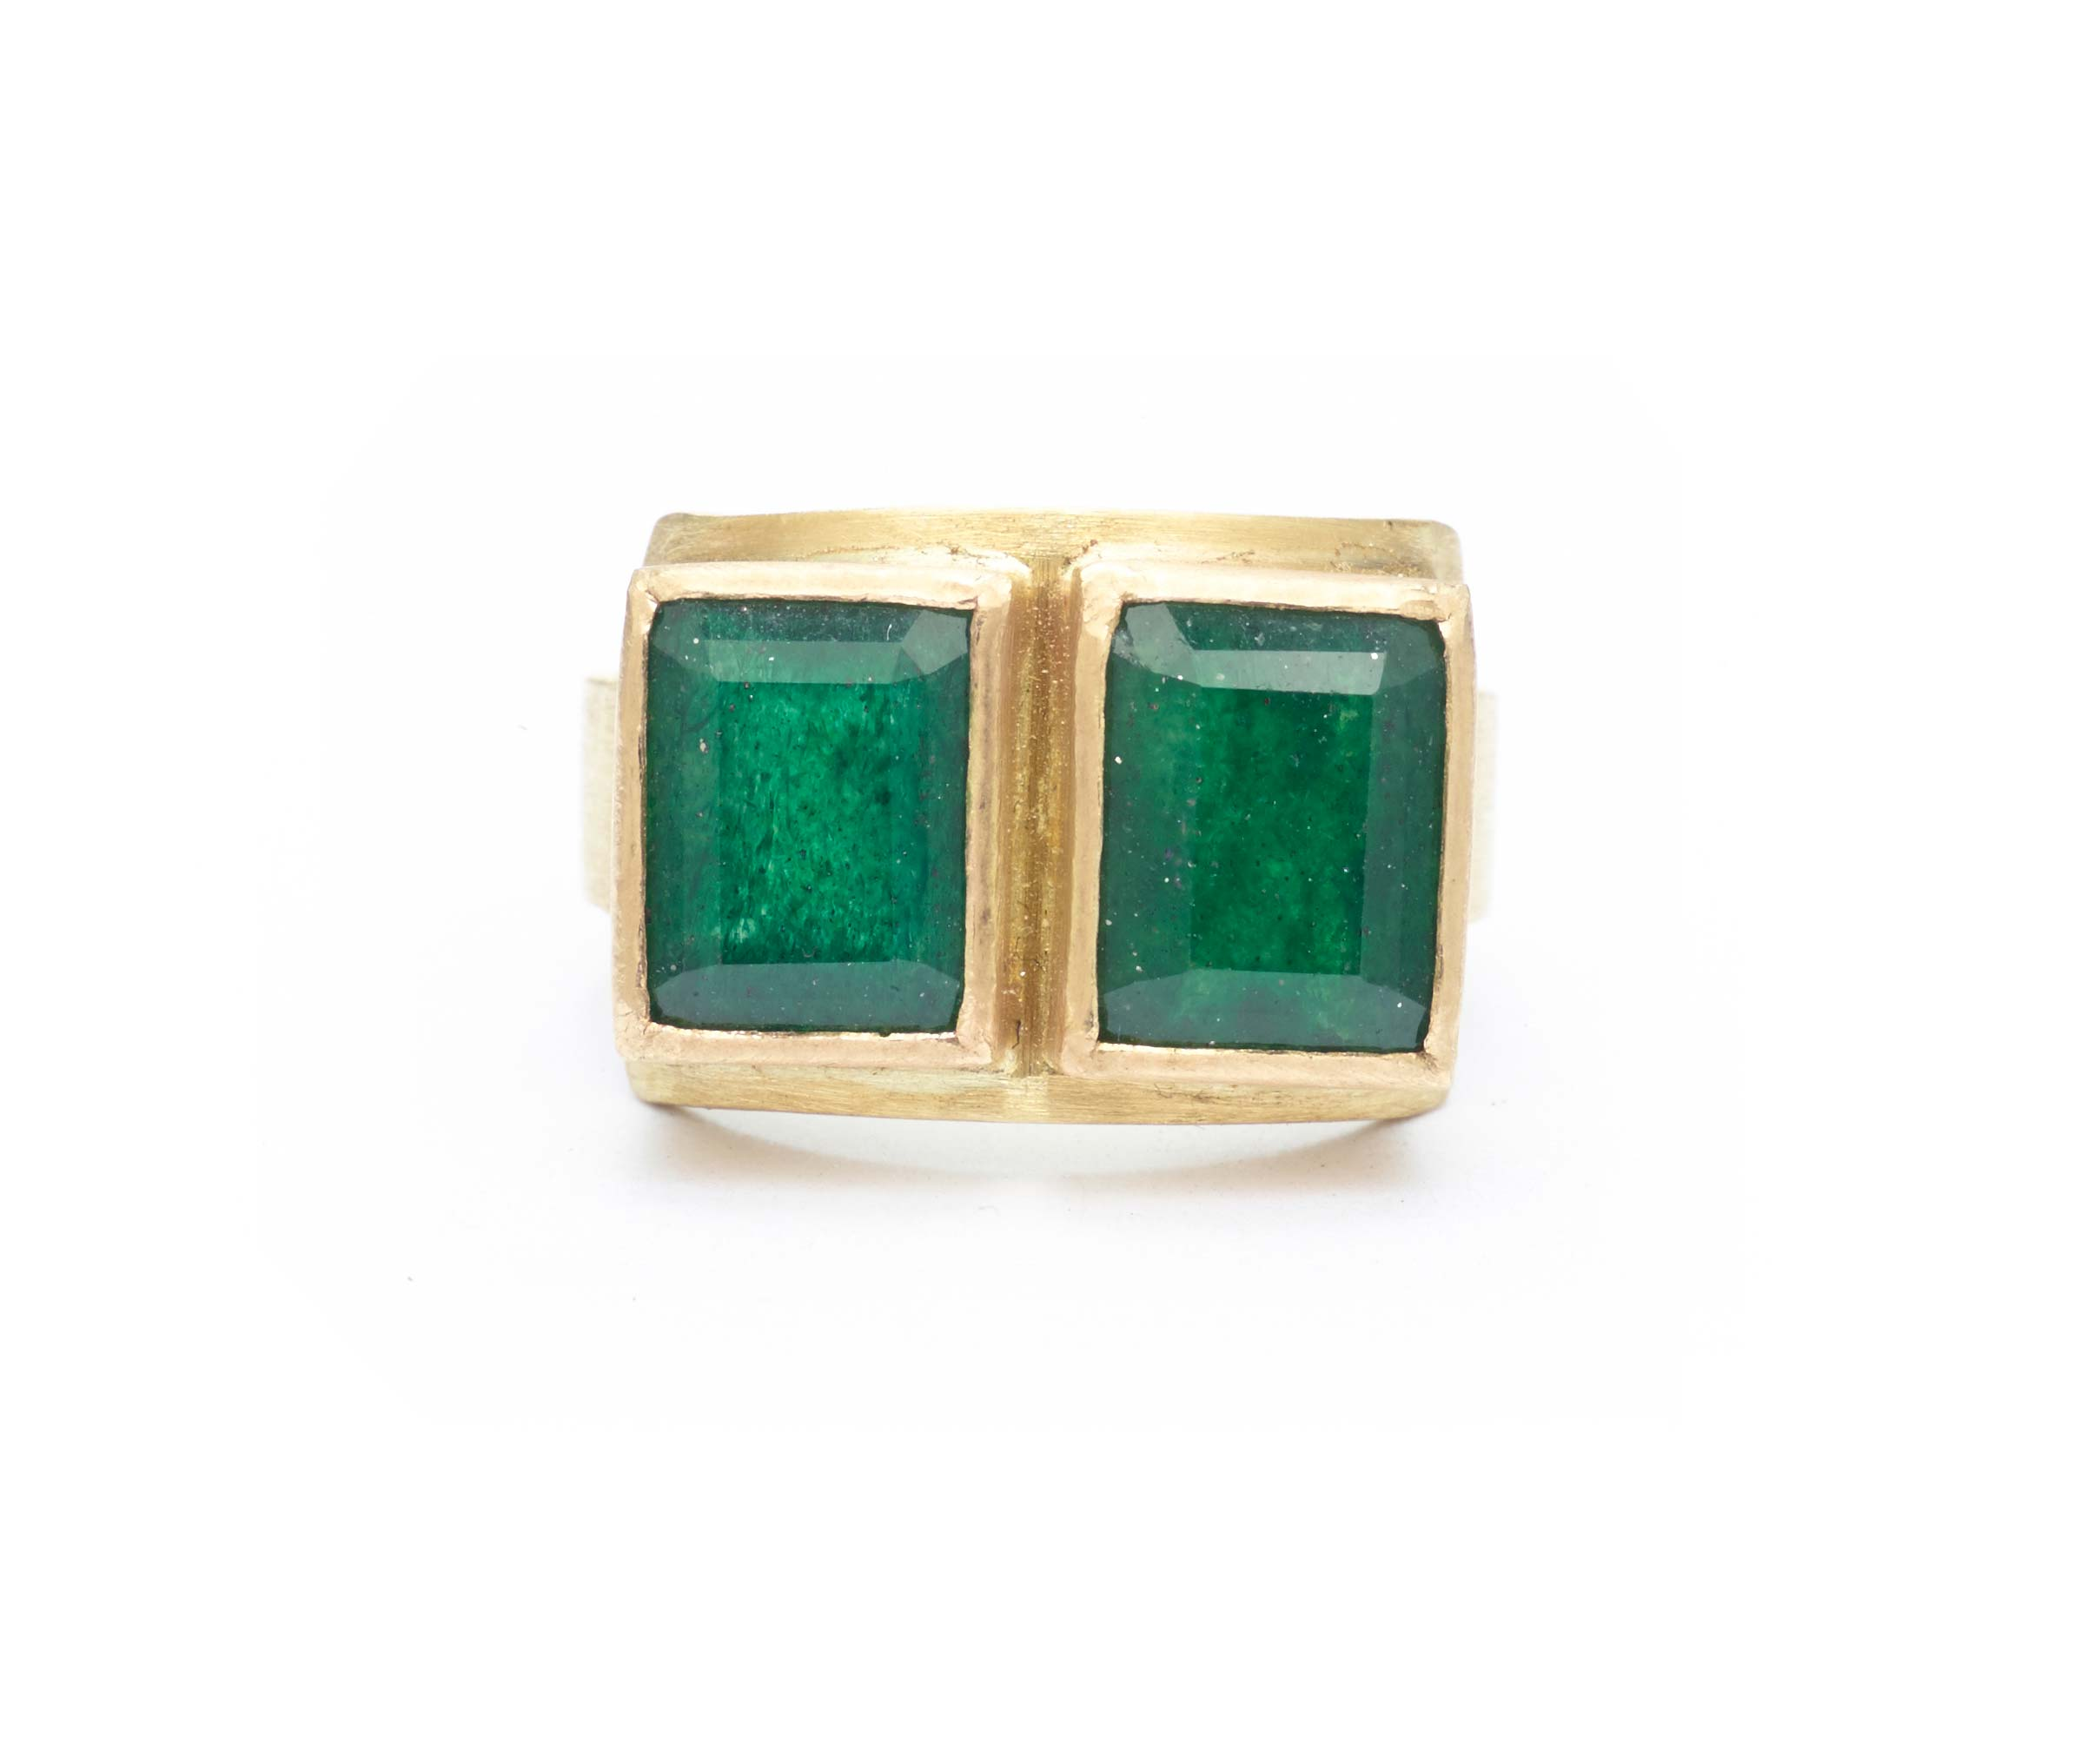 custom-Emerald-and-gold-ring-handcrafted-custom-jewelry-made-in-austin-tx.jpg